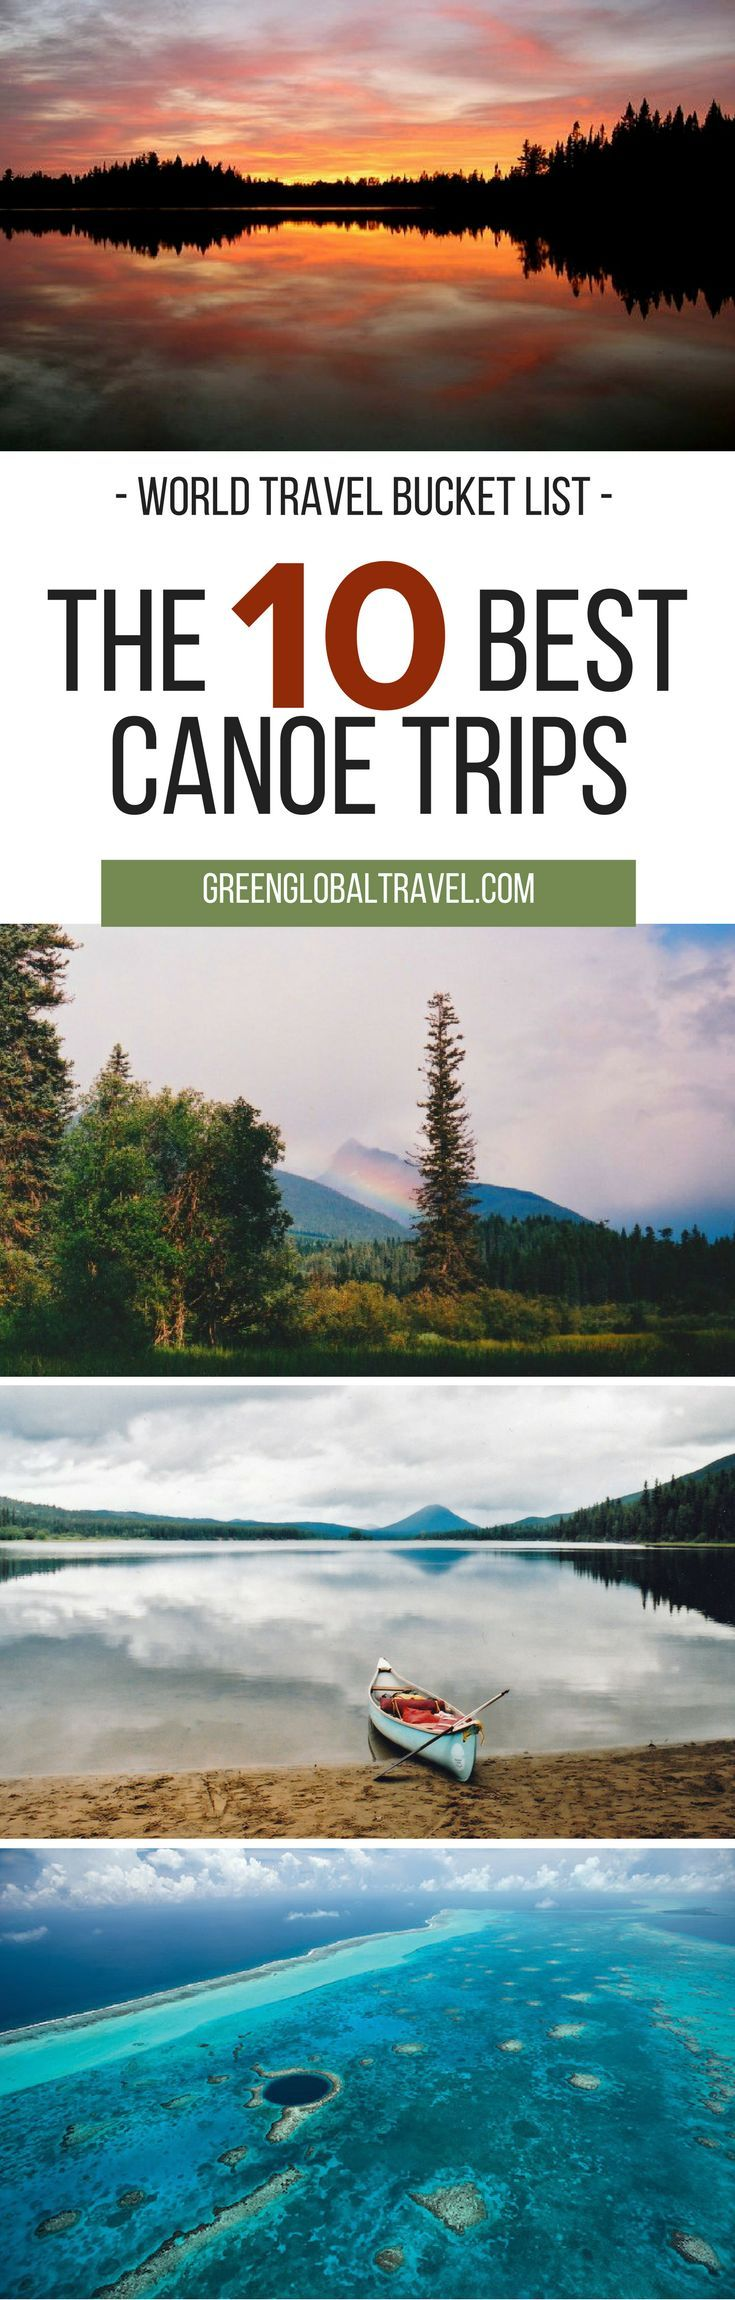 Here are some of our best canoe trips for your world travel bucket list! | British Columbia | Florida | Georgia | Belize | South America | Minnesota | Botswana | Southeast Asia | Tonga | India |